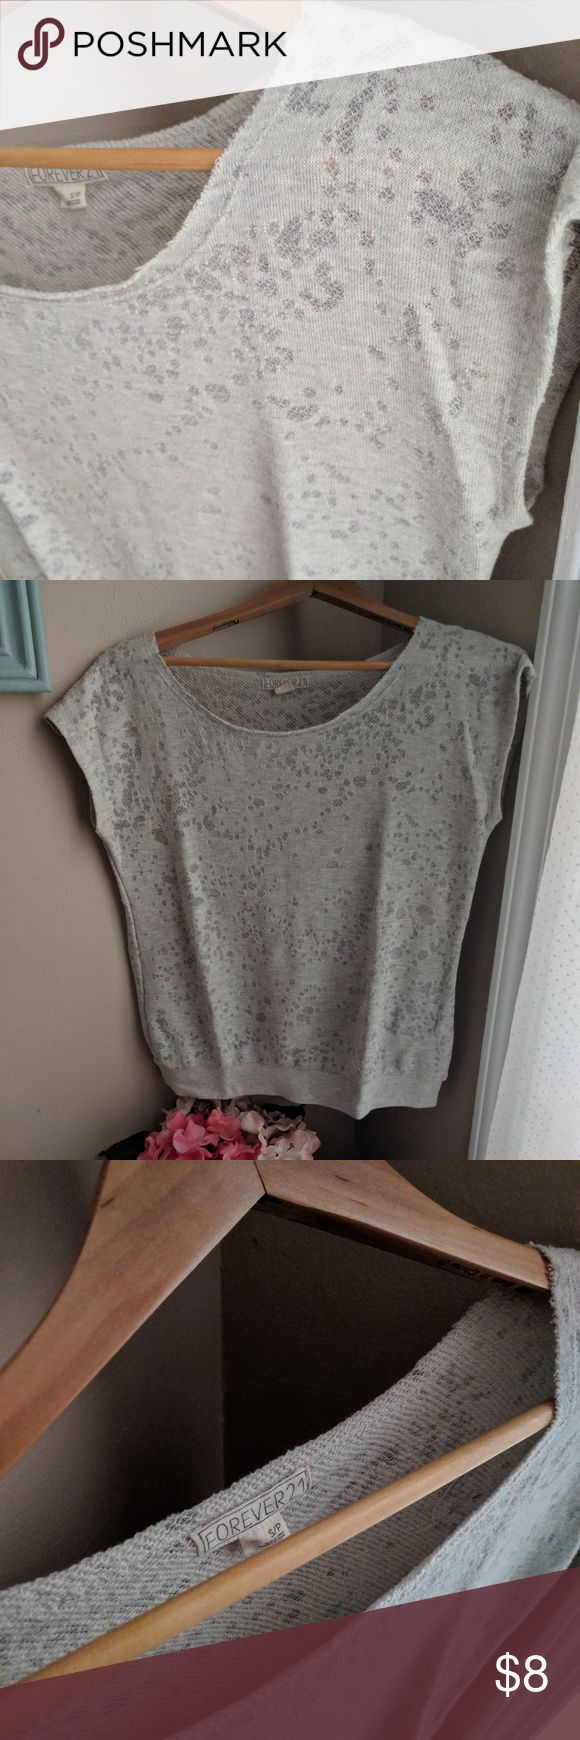 Forever 21 Terry Cloth Short Sleeve Top Cute, comfy, and casual! This soft, neutral shirt is almost sleeveless-has very short sleeves-and in excellent used condition. Fabric has some variation to it but is still opaque if worn with a light to medium colored bra. Forever 21 Tops